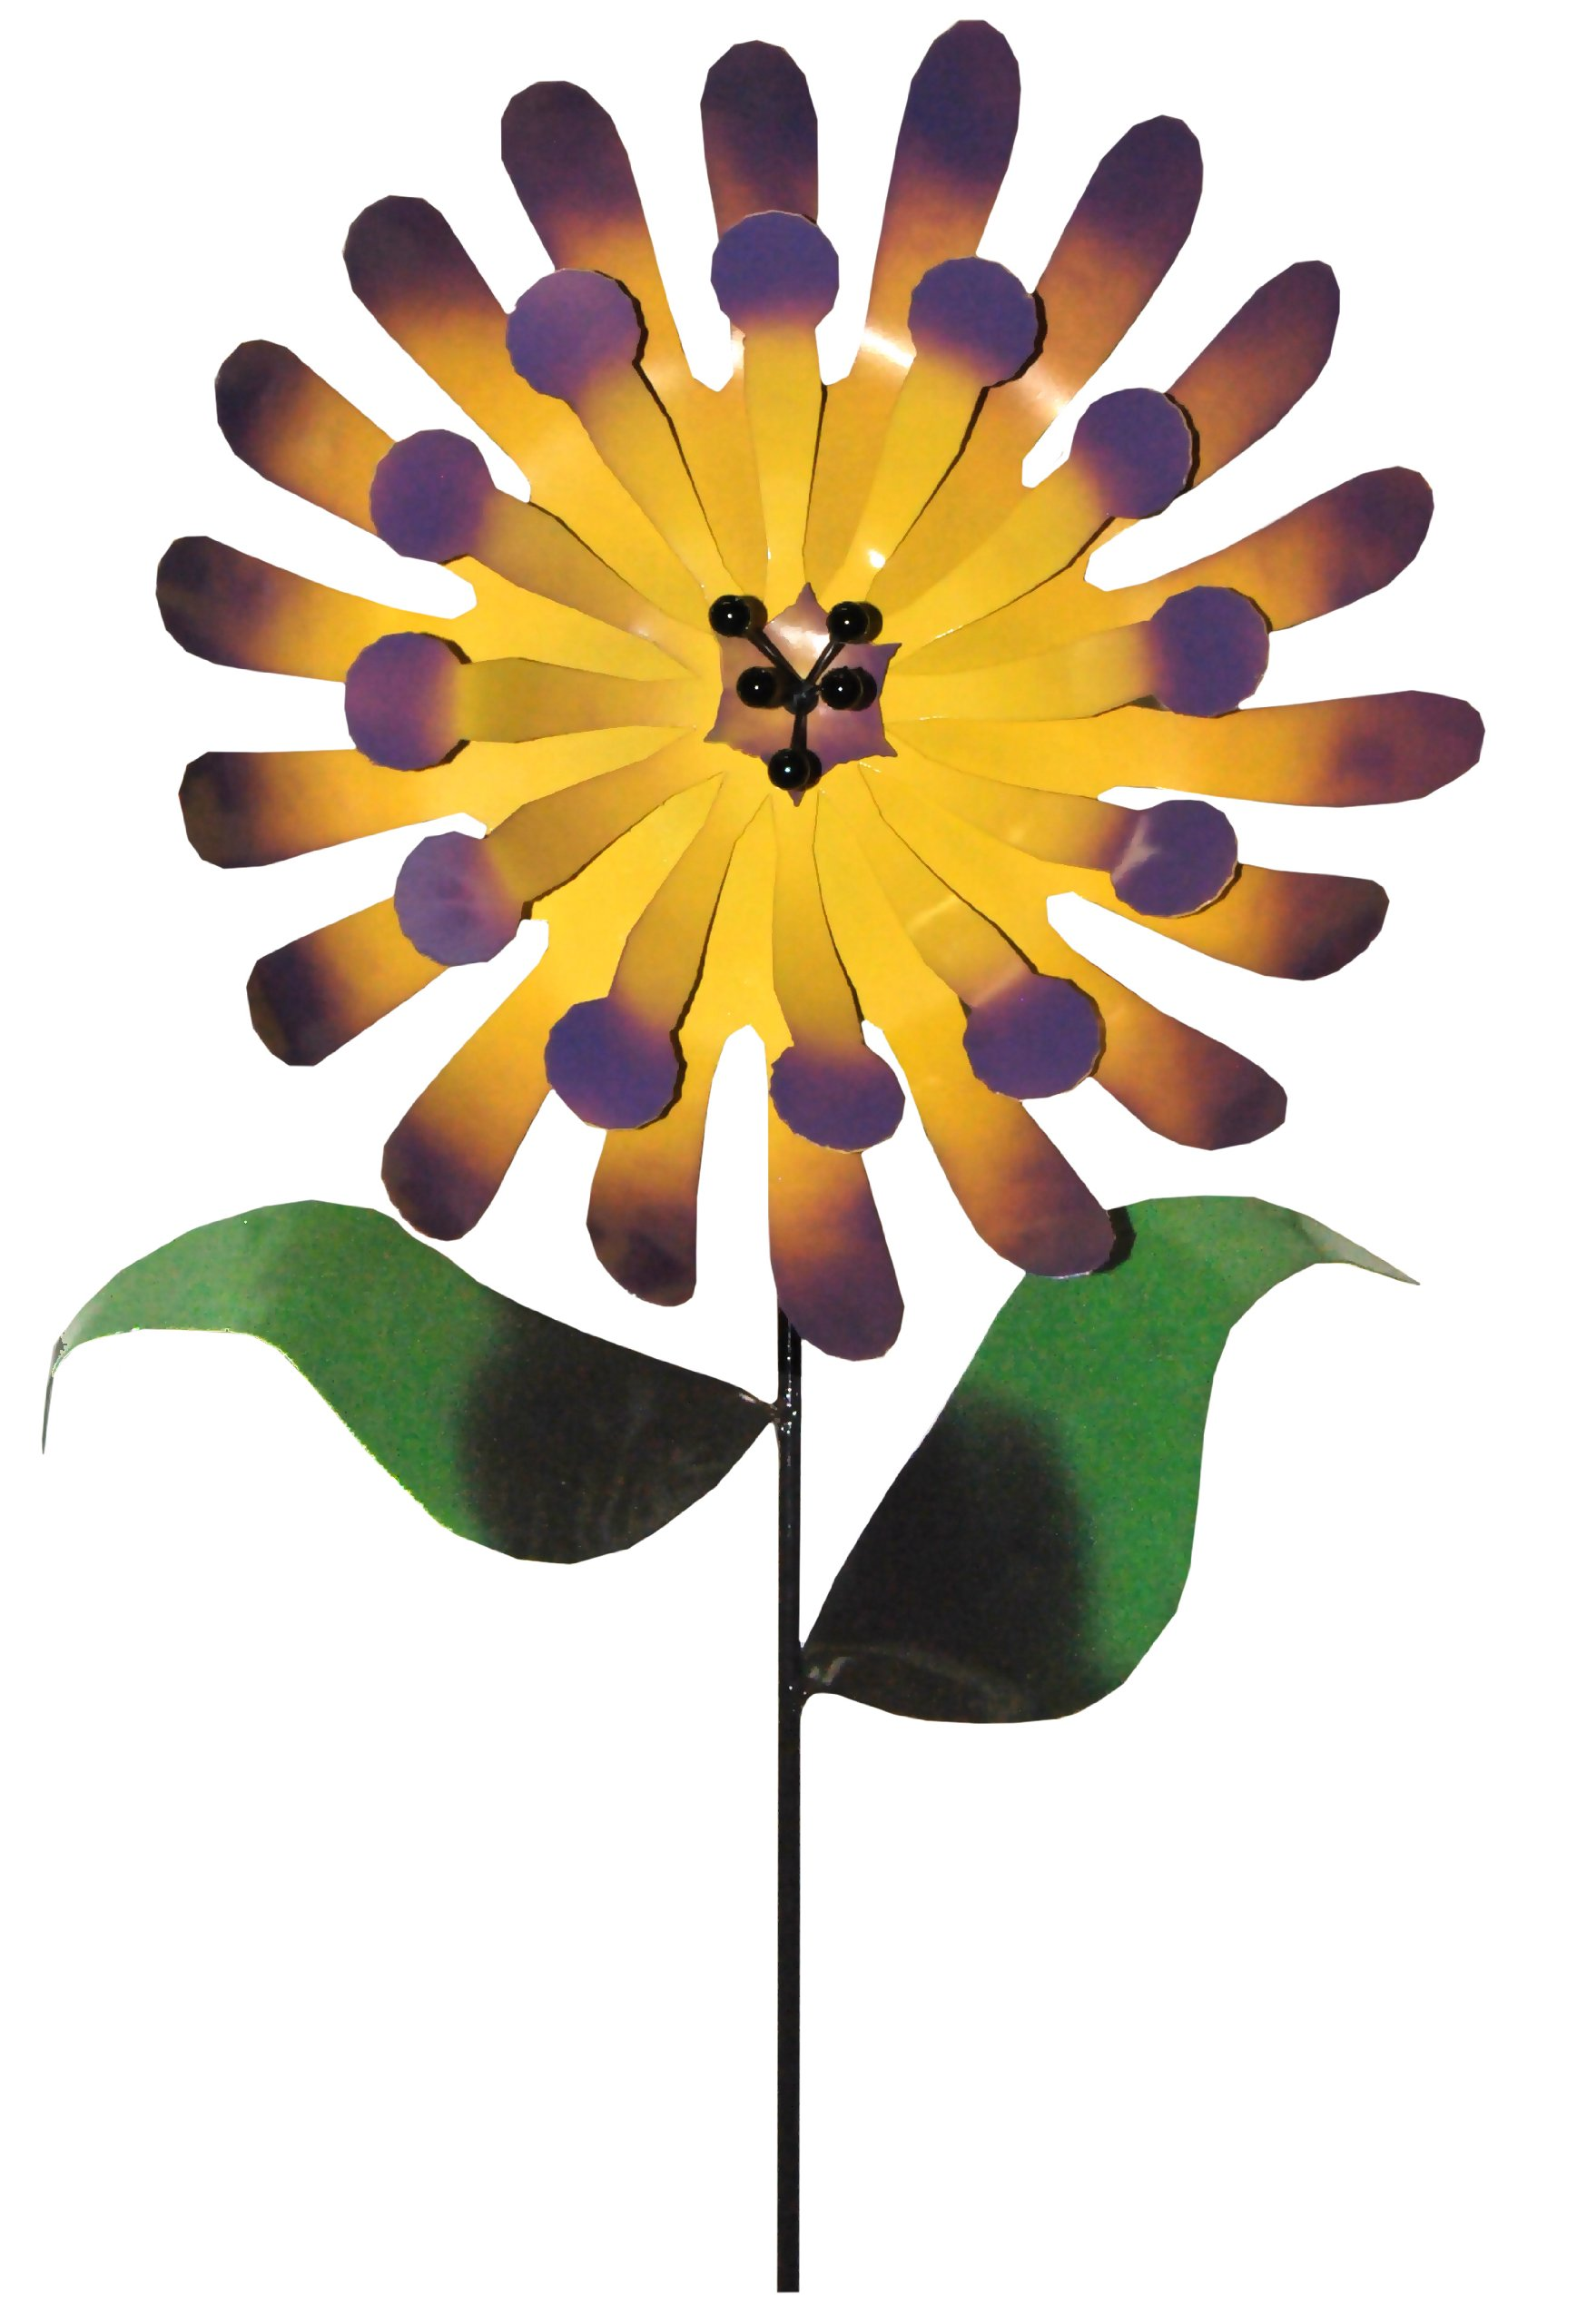 Steven Cooper Metalsmith AFLWR-36-XL Artificial Garden Flower on Footed Stake, 6-Feet, Yellow